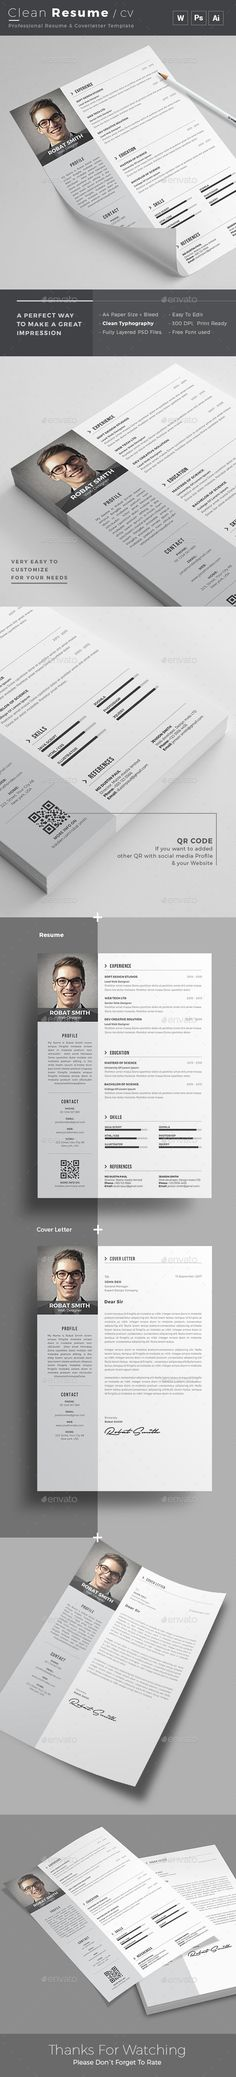 Resume Template PSD, Ms Word, AI Illustrator. Download here: http://graphicriver.net/item/resume-/16421752?ref=ksioks